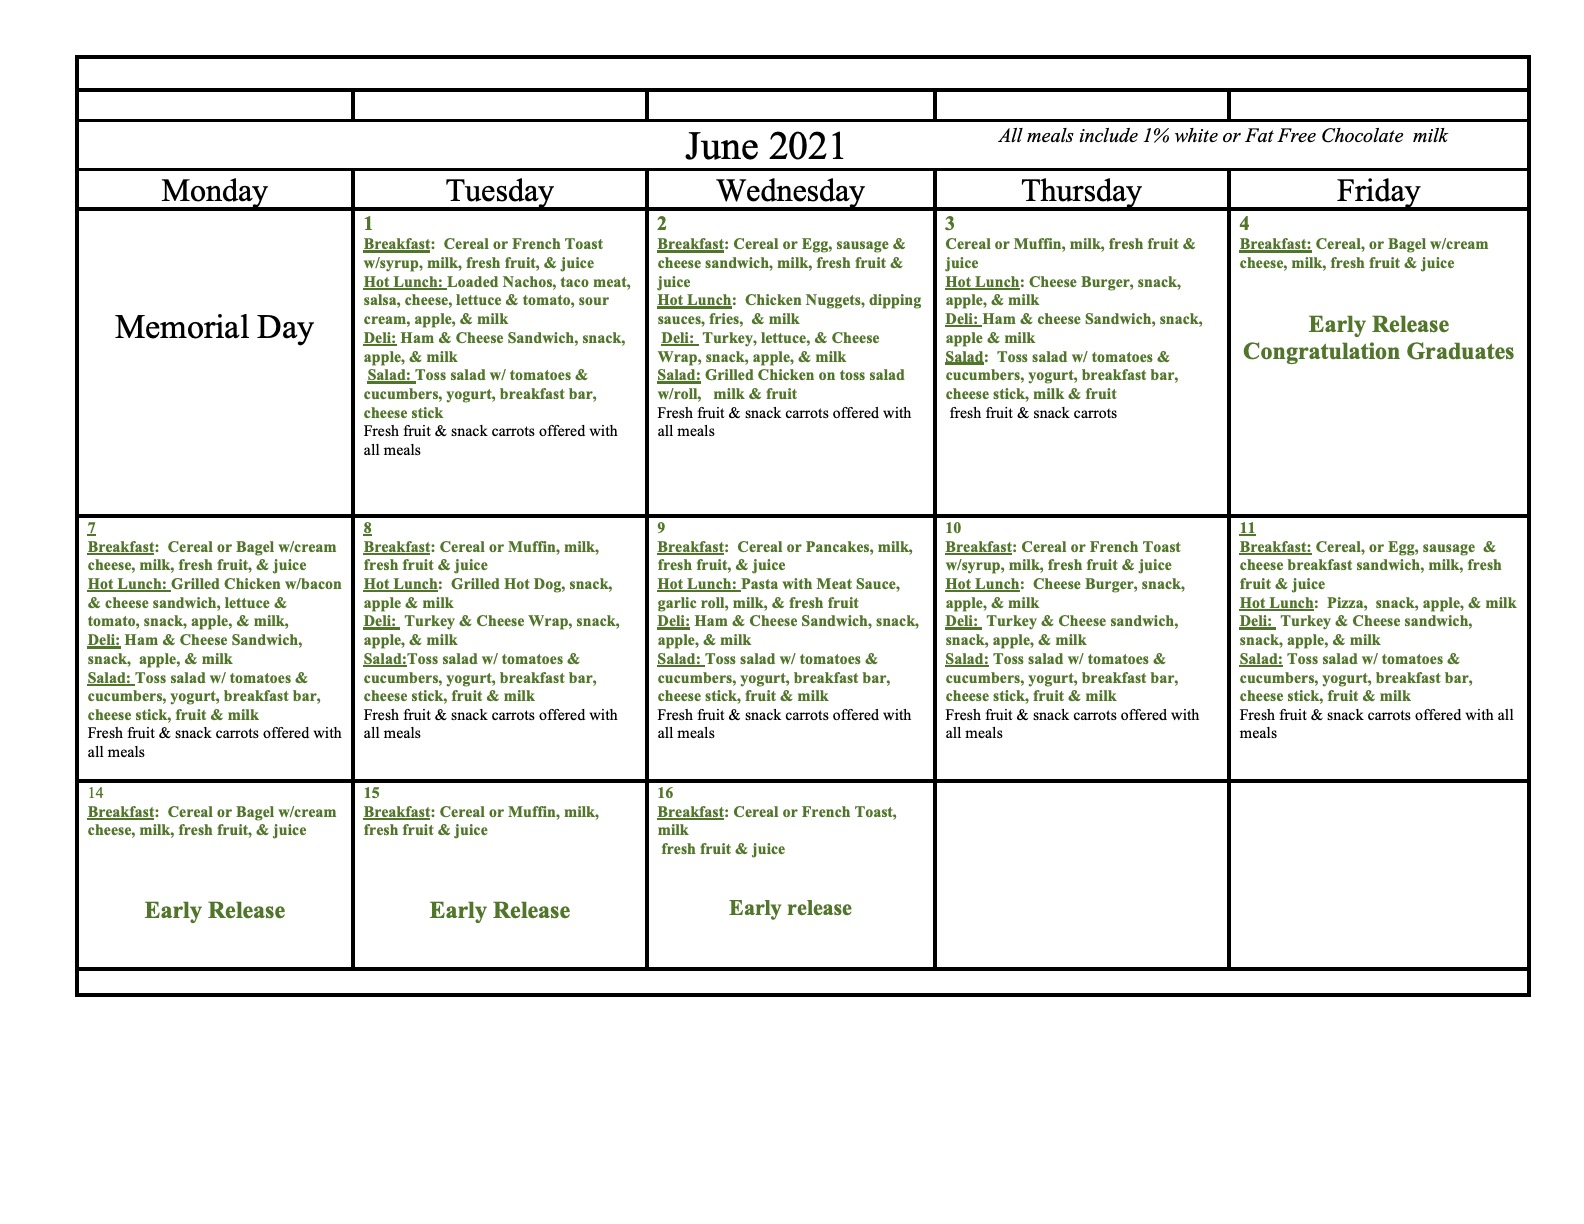 June 2021 Lunch Calendar - click on button to download pdf